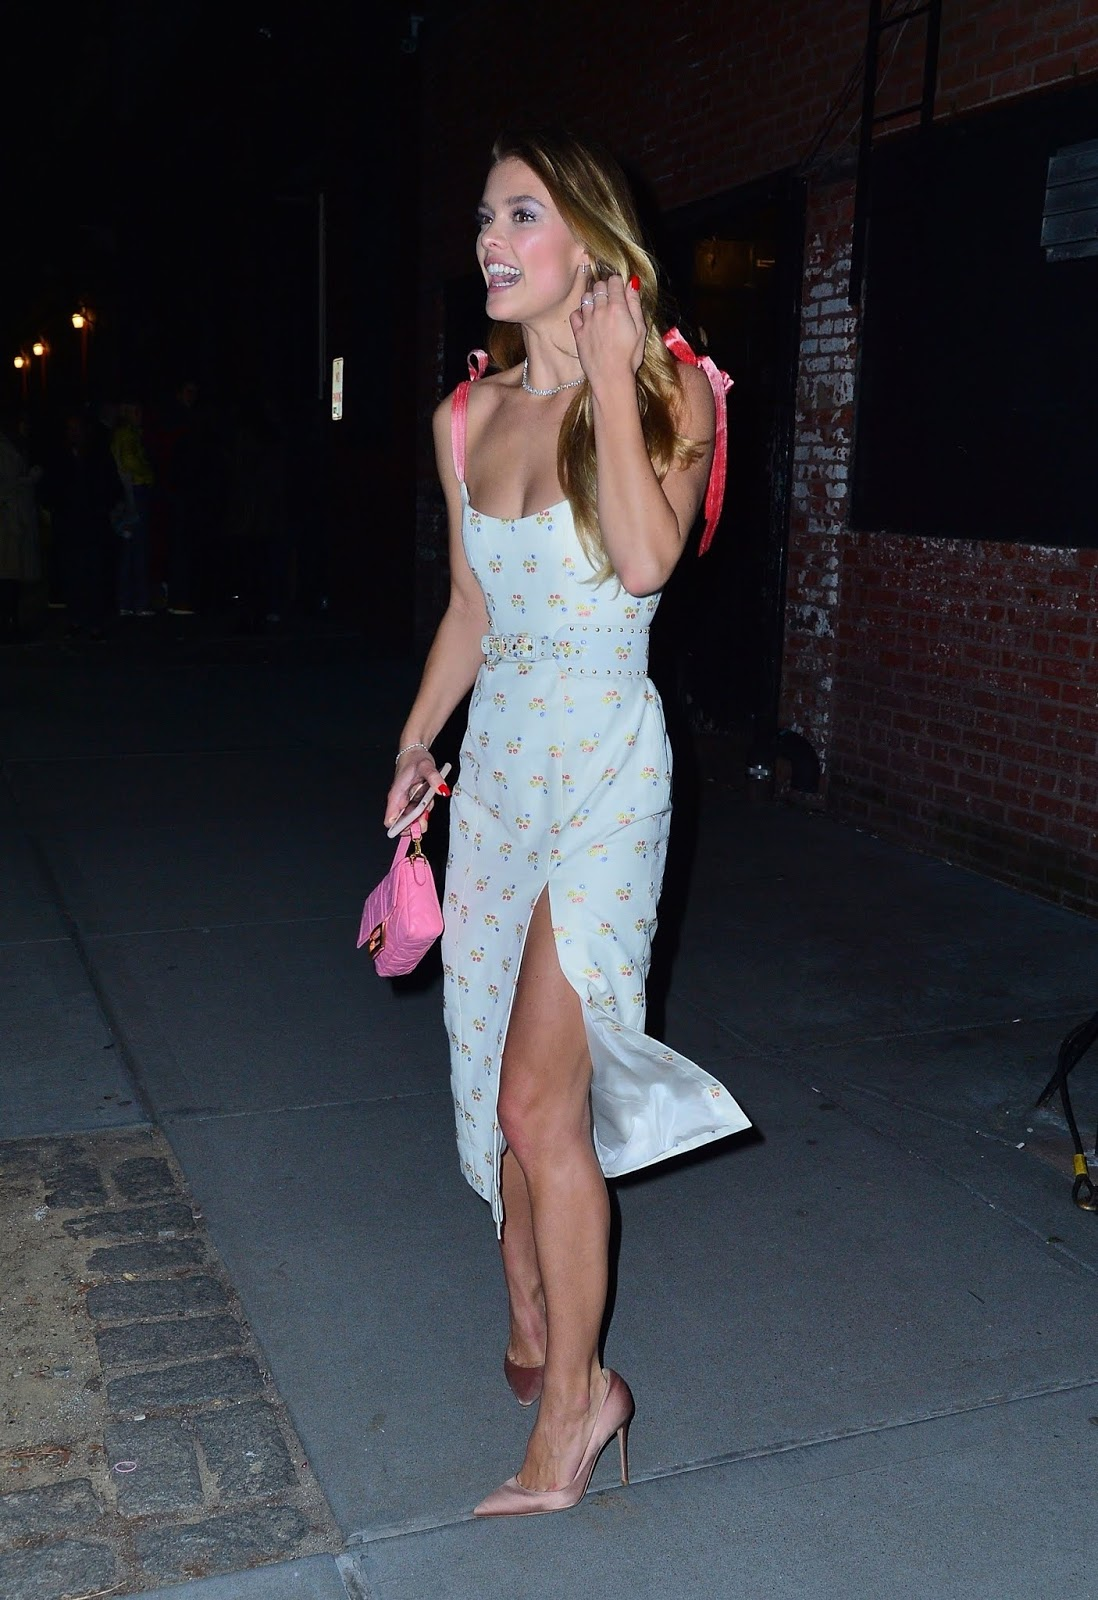 Nina Agdal looks striking as she arrives to the Tiffany & Co party in NYC - 02/09/2019